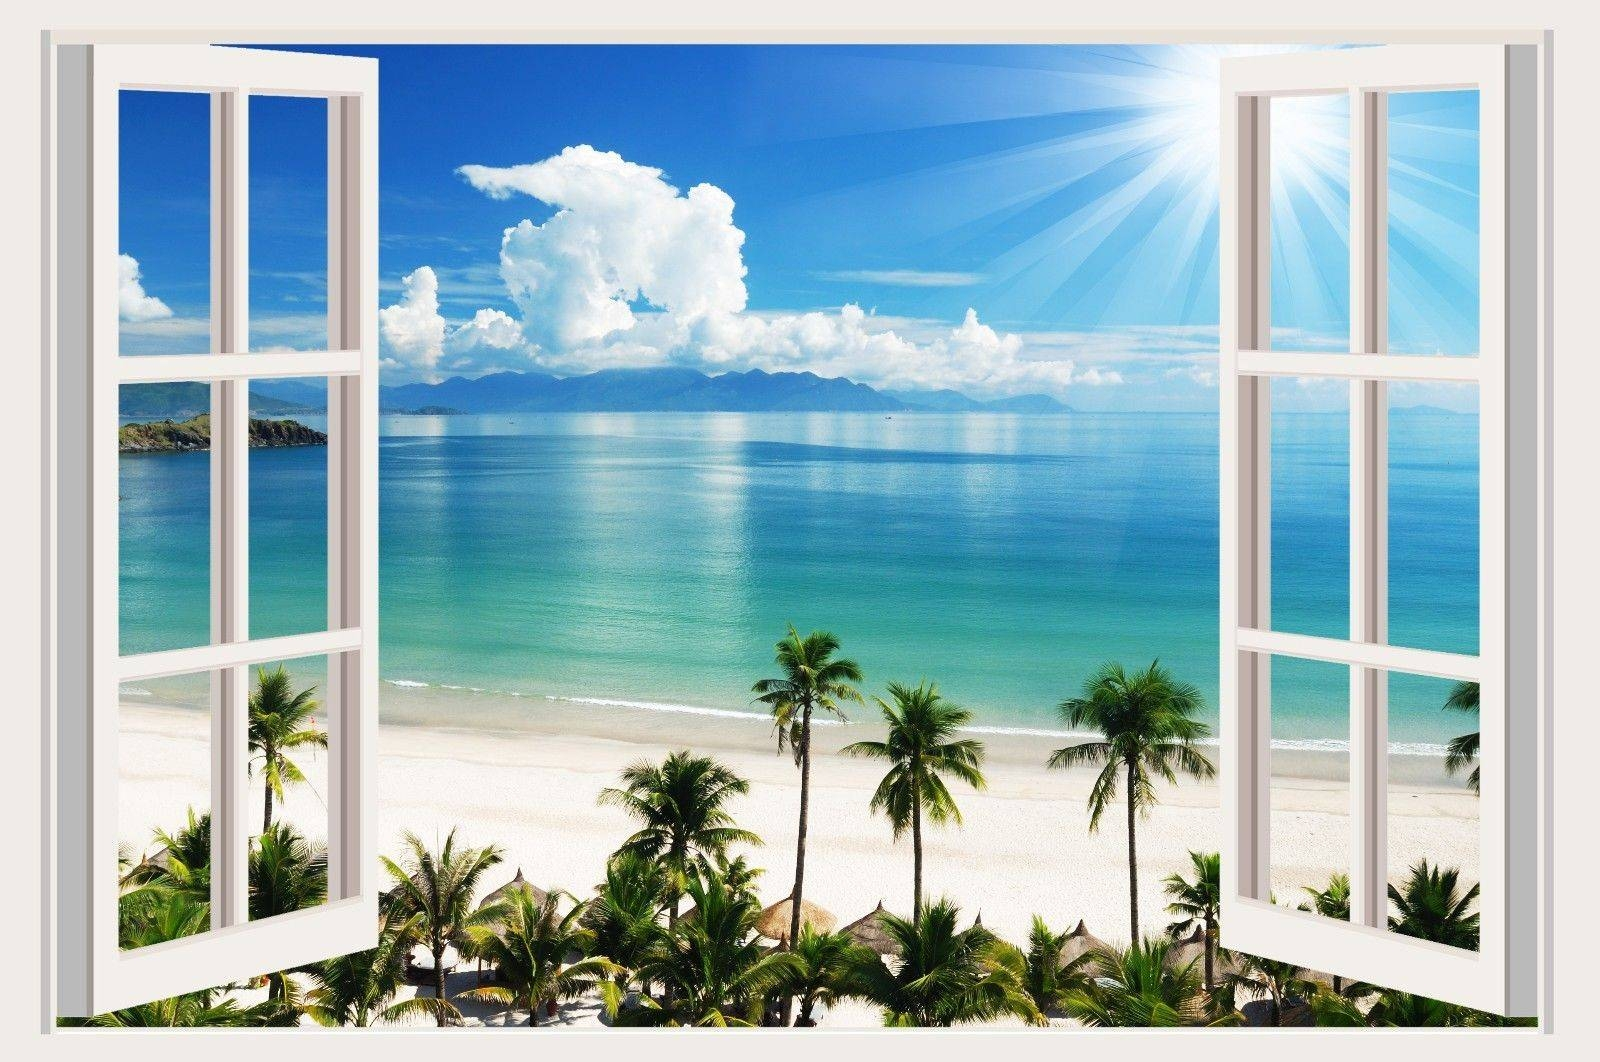 Small Wall Stickers Tropical Sea Beach Trees Decals 3D Window Pertaining To Current Vinyl 3D Wall Art (View 17 of 20)